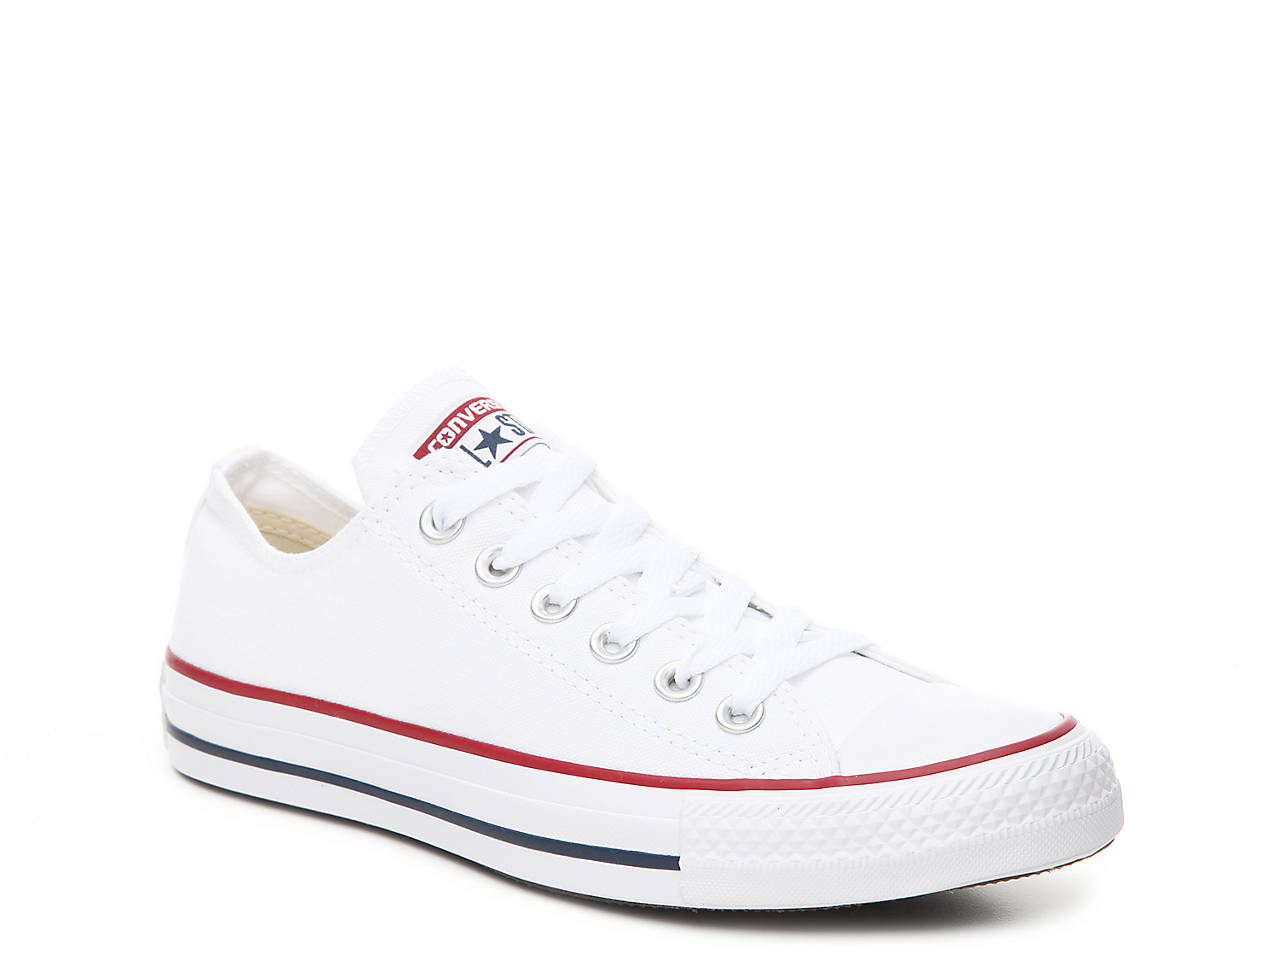 98cf16fd5c31 Converse Chuck Taylor All Star Sneaker - Women s Women s Shoes